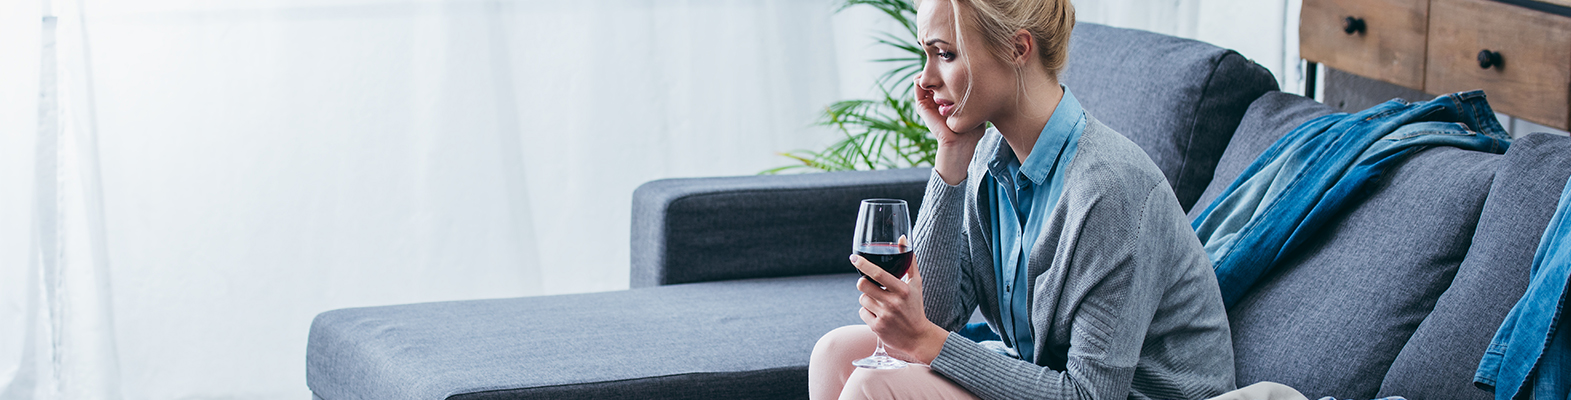 female worried, drinking a glass of wine